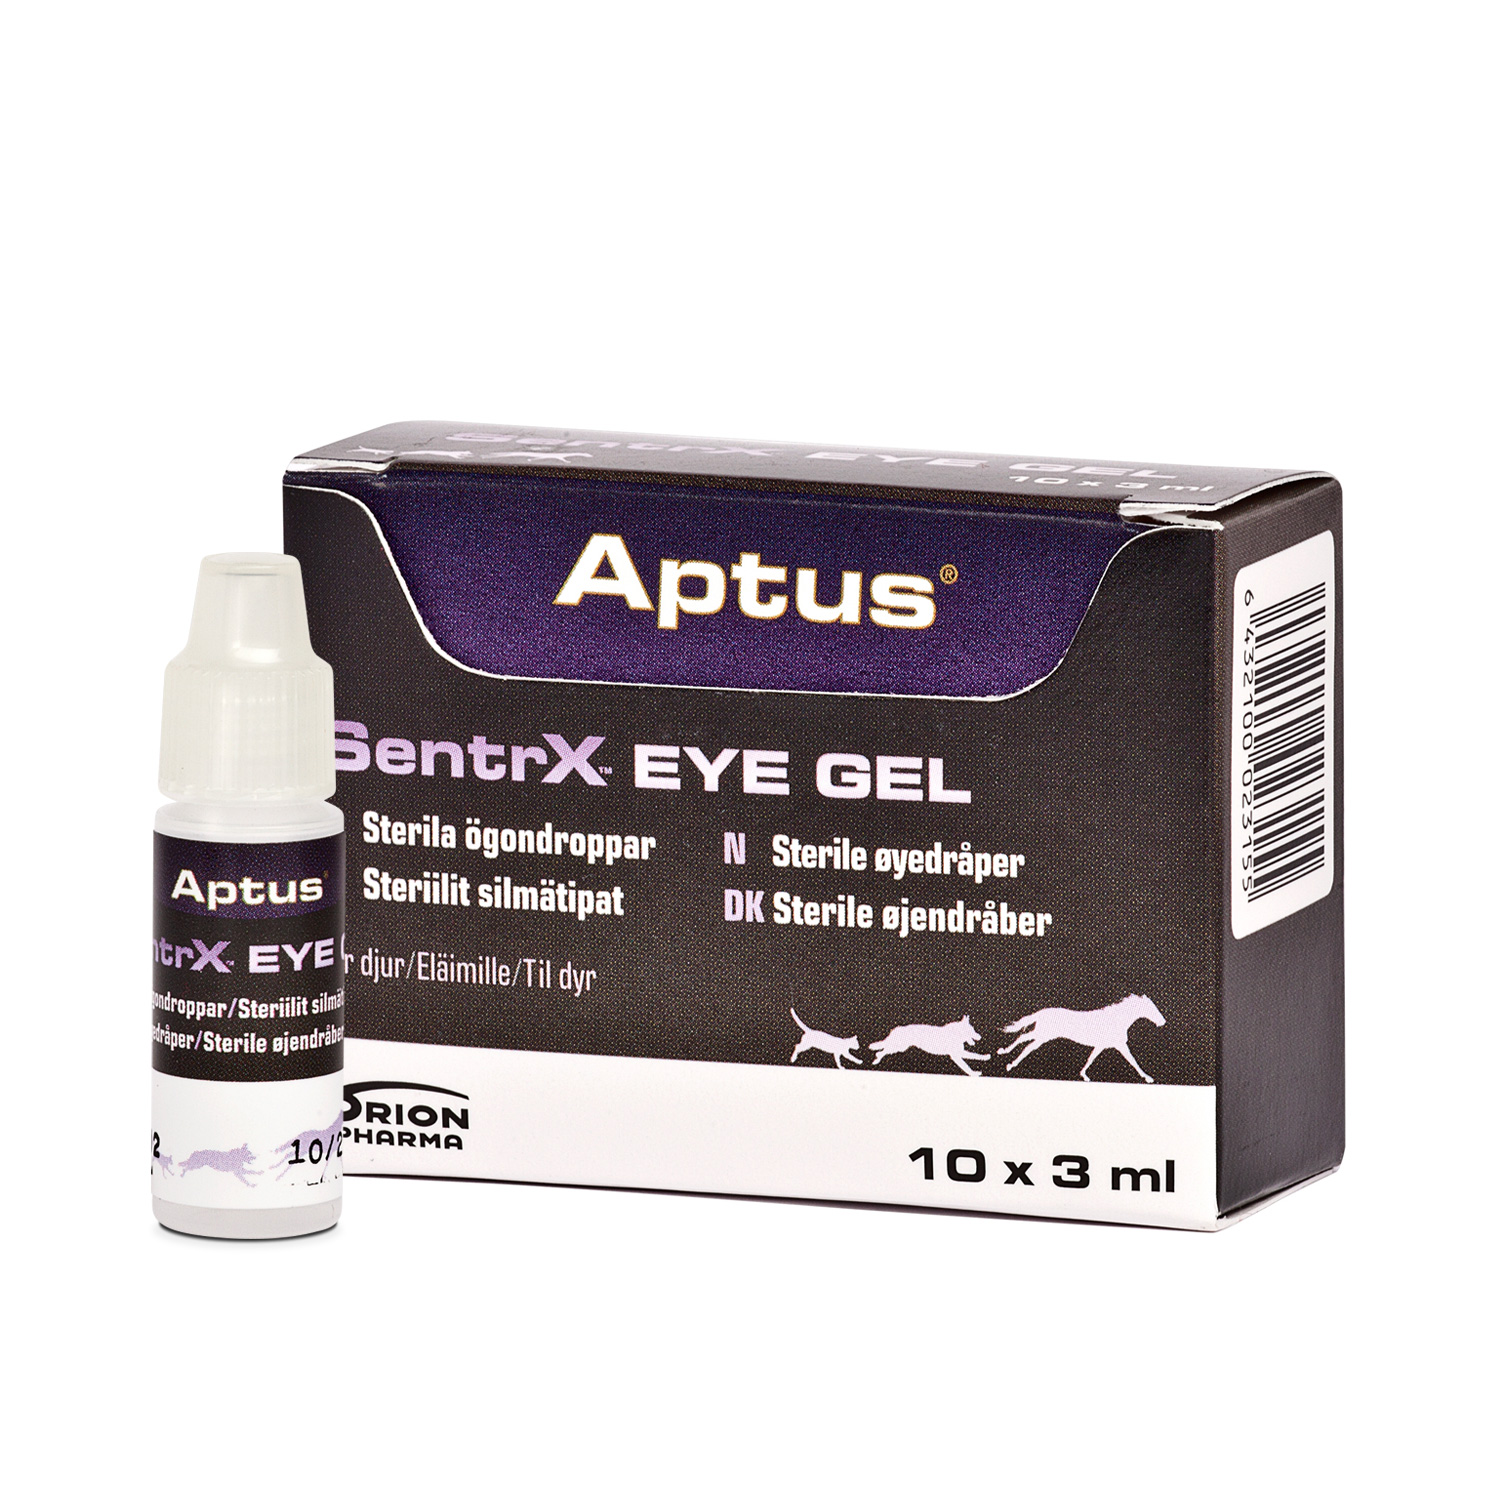 Aptus SentrX Eye Gel